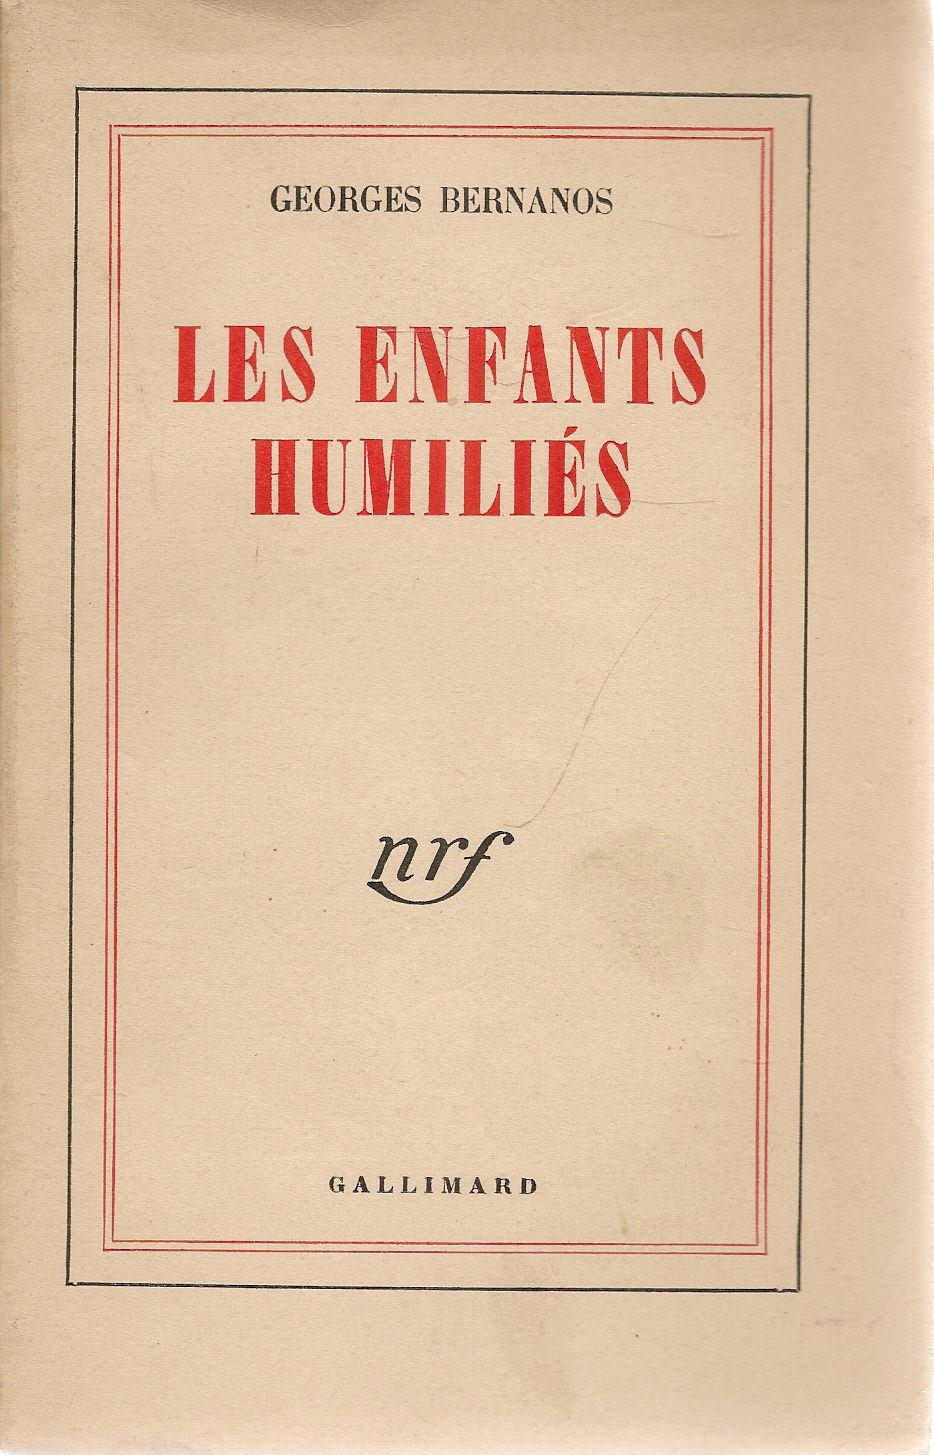 LES INFANTS HUMILIES - GEORGE BERNANOS GALLIMARD 1953